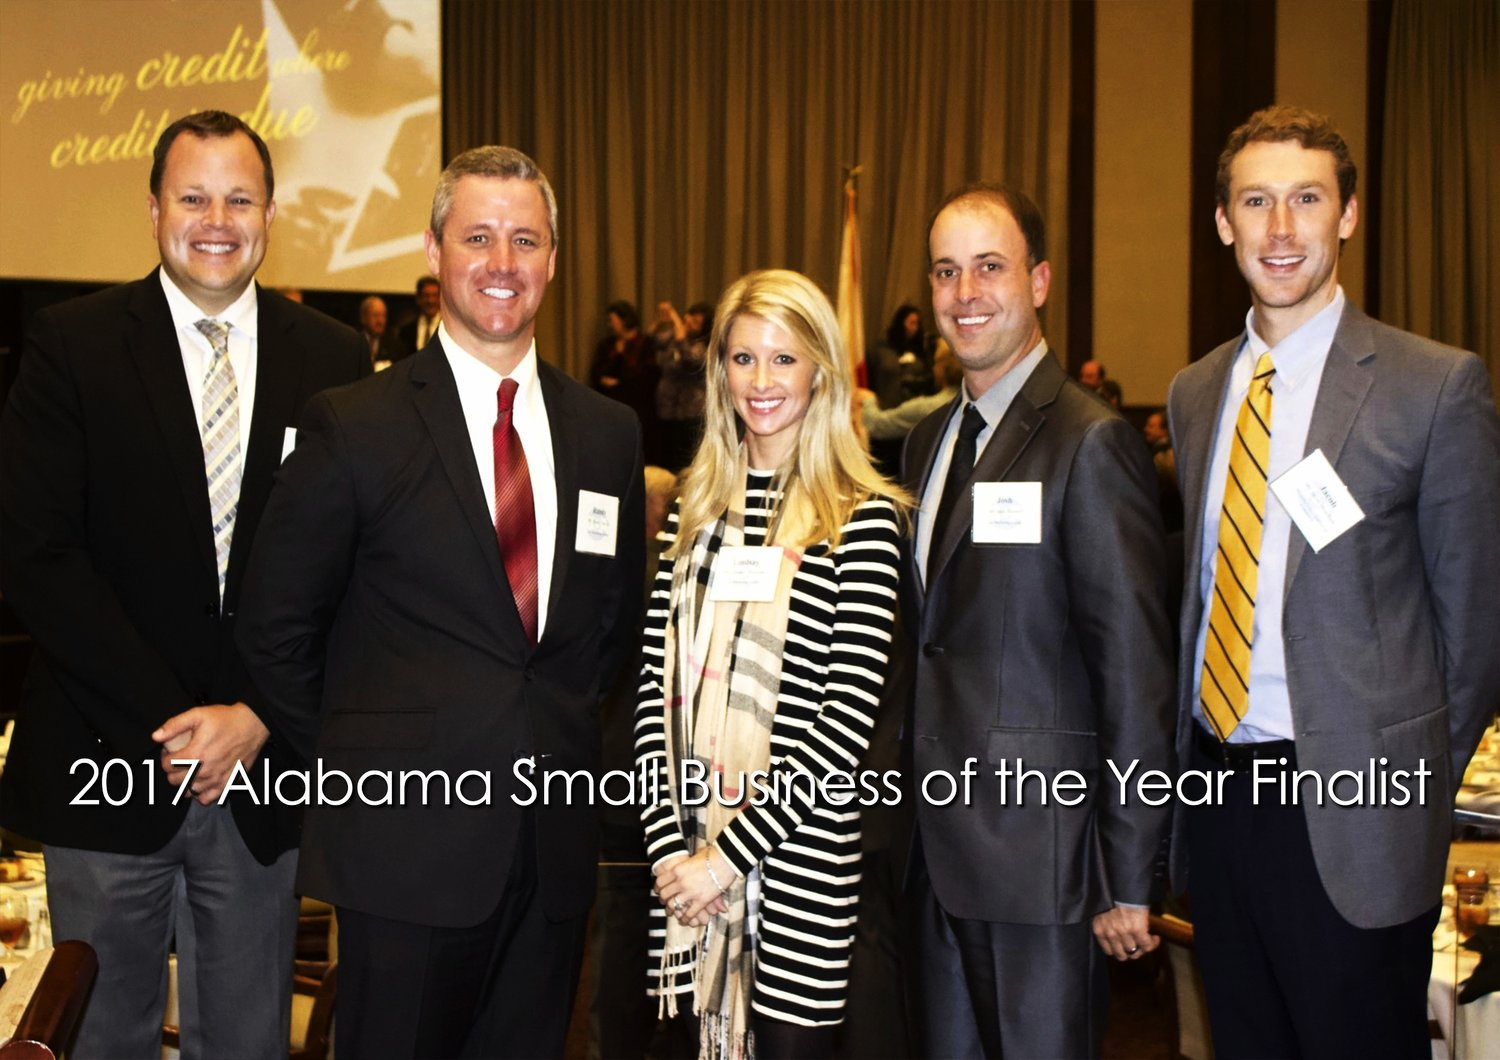 2017 Alabama Small Business of the Year Finalist